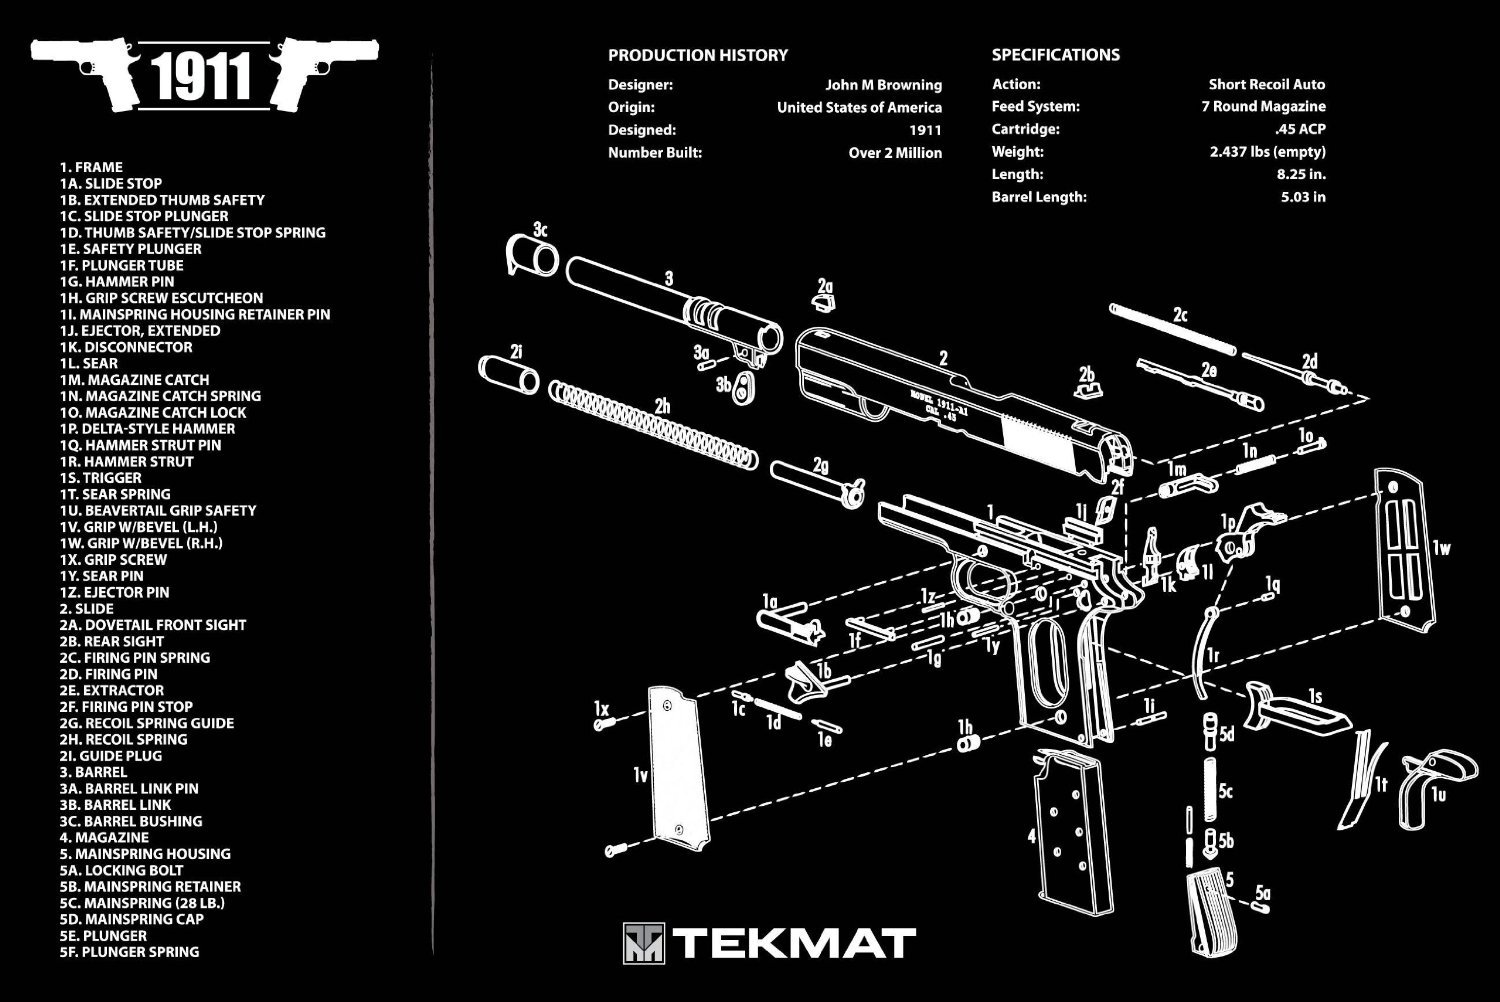 Ultimate Arms Gear 1911 Pistol Handgun Gunsmith Armorers Large Safety Diagram Also With Exploded Parts Poster 24 X 36 Cleaning Work Tool Bench Gun Wall Decoration Hang Up Print